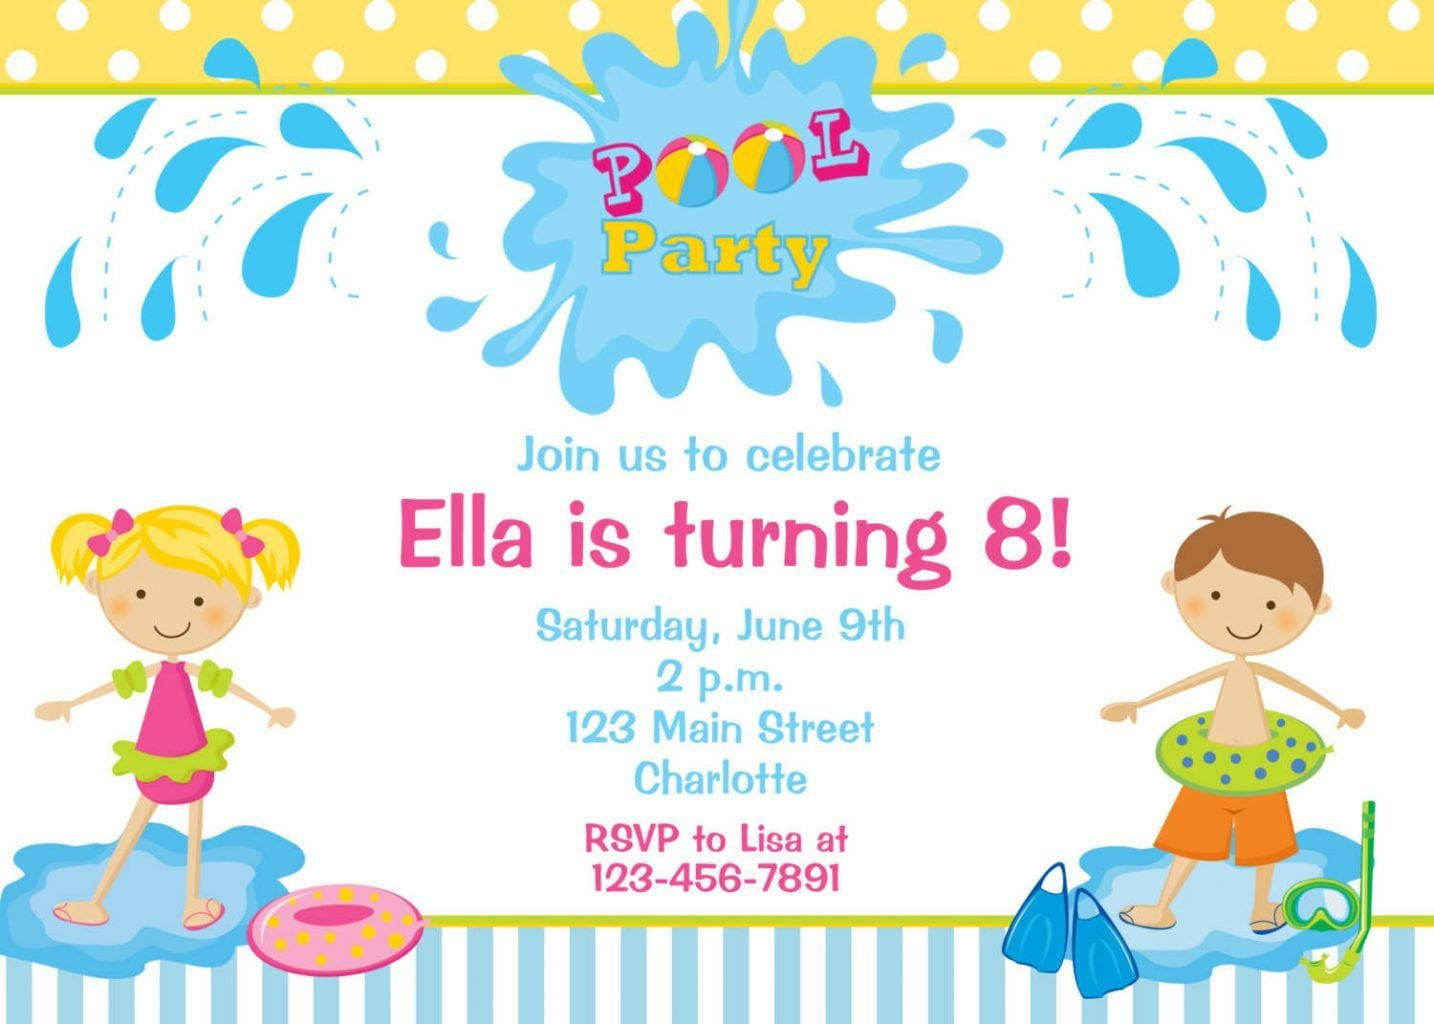 Tupperware Party Invitation Wording - Life Style By Modernstork.com